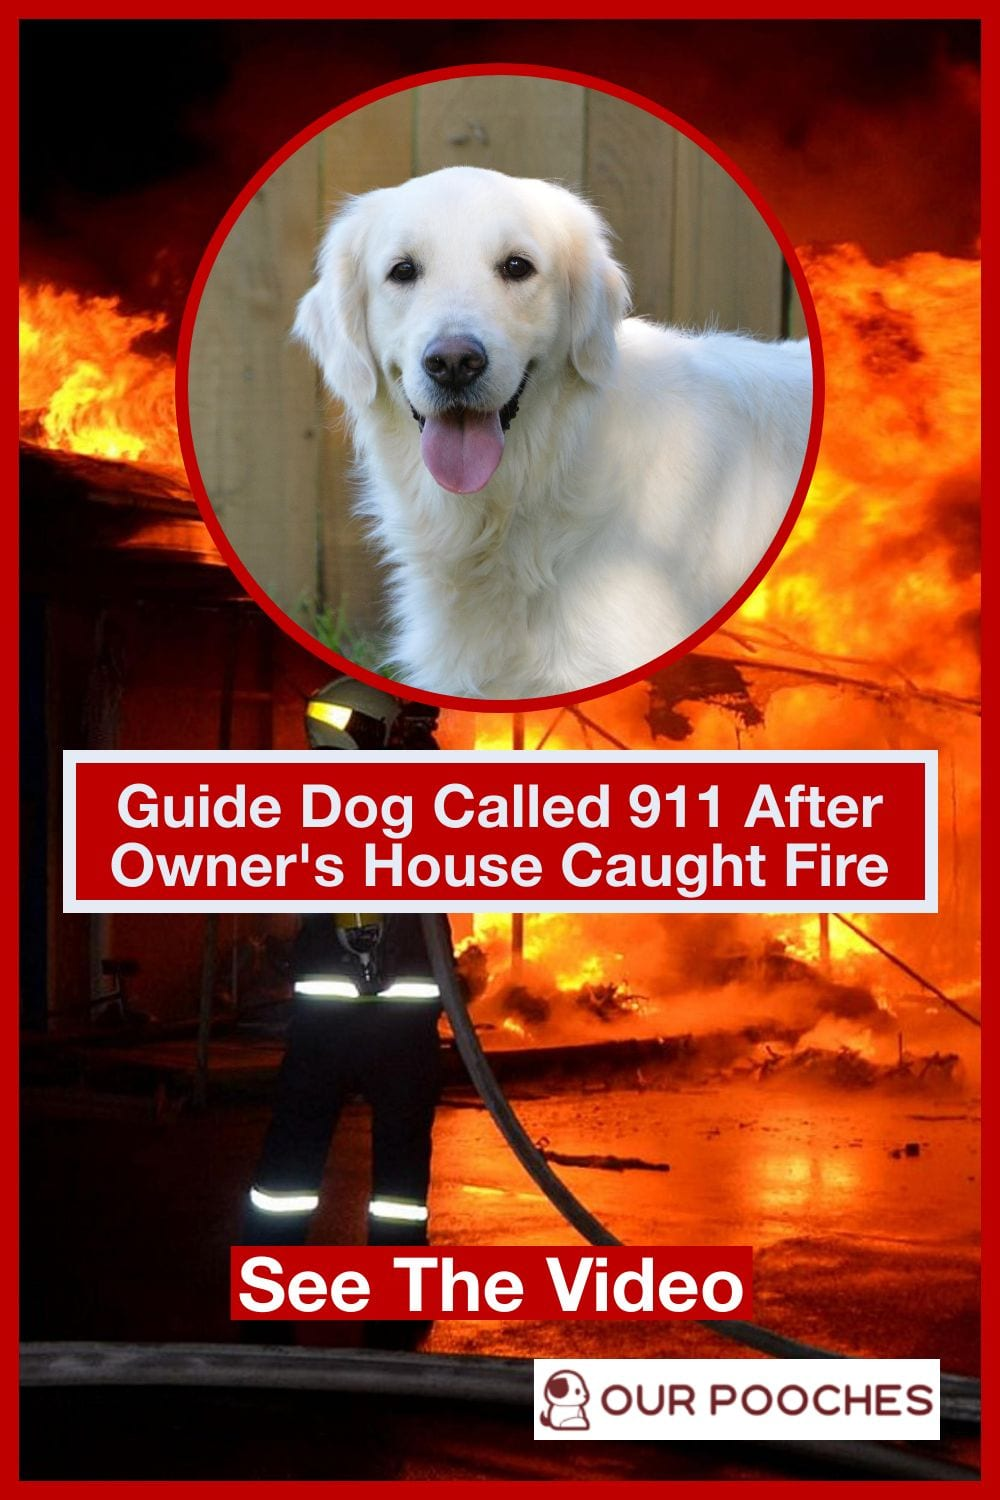 Guide Dog Calls 911 To Report House Fire